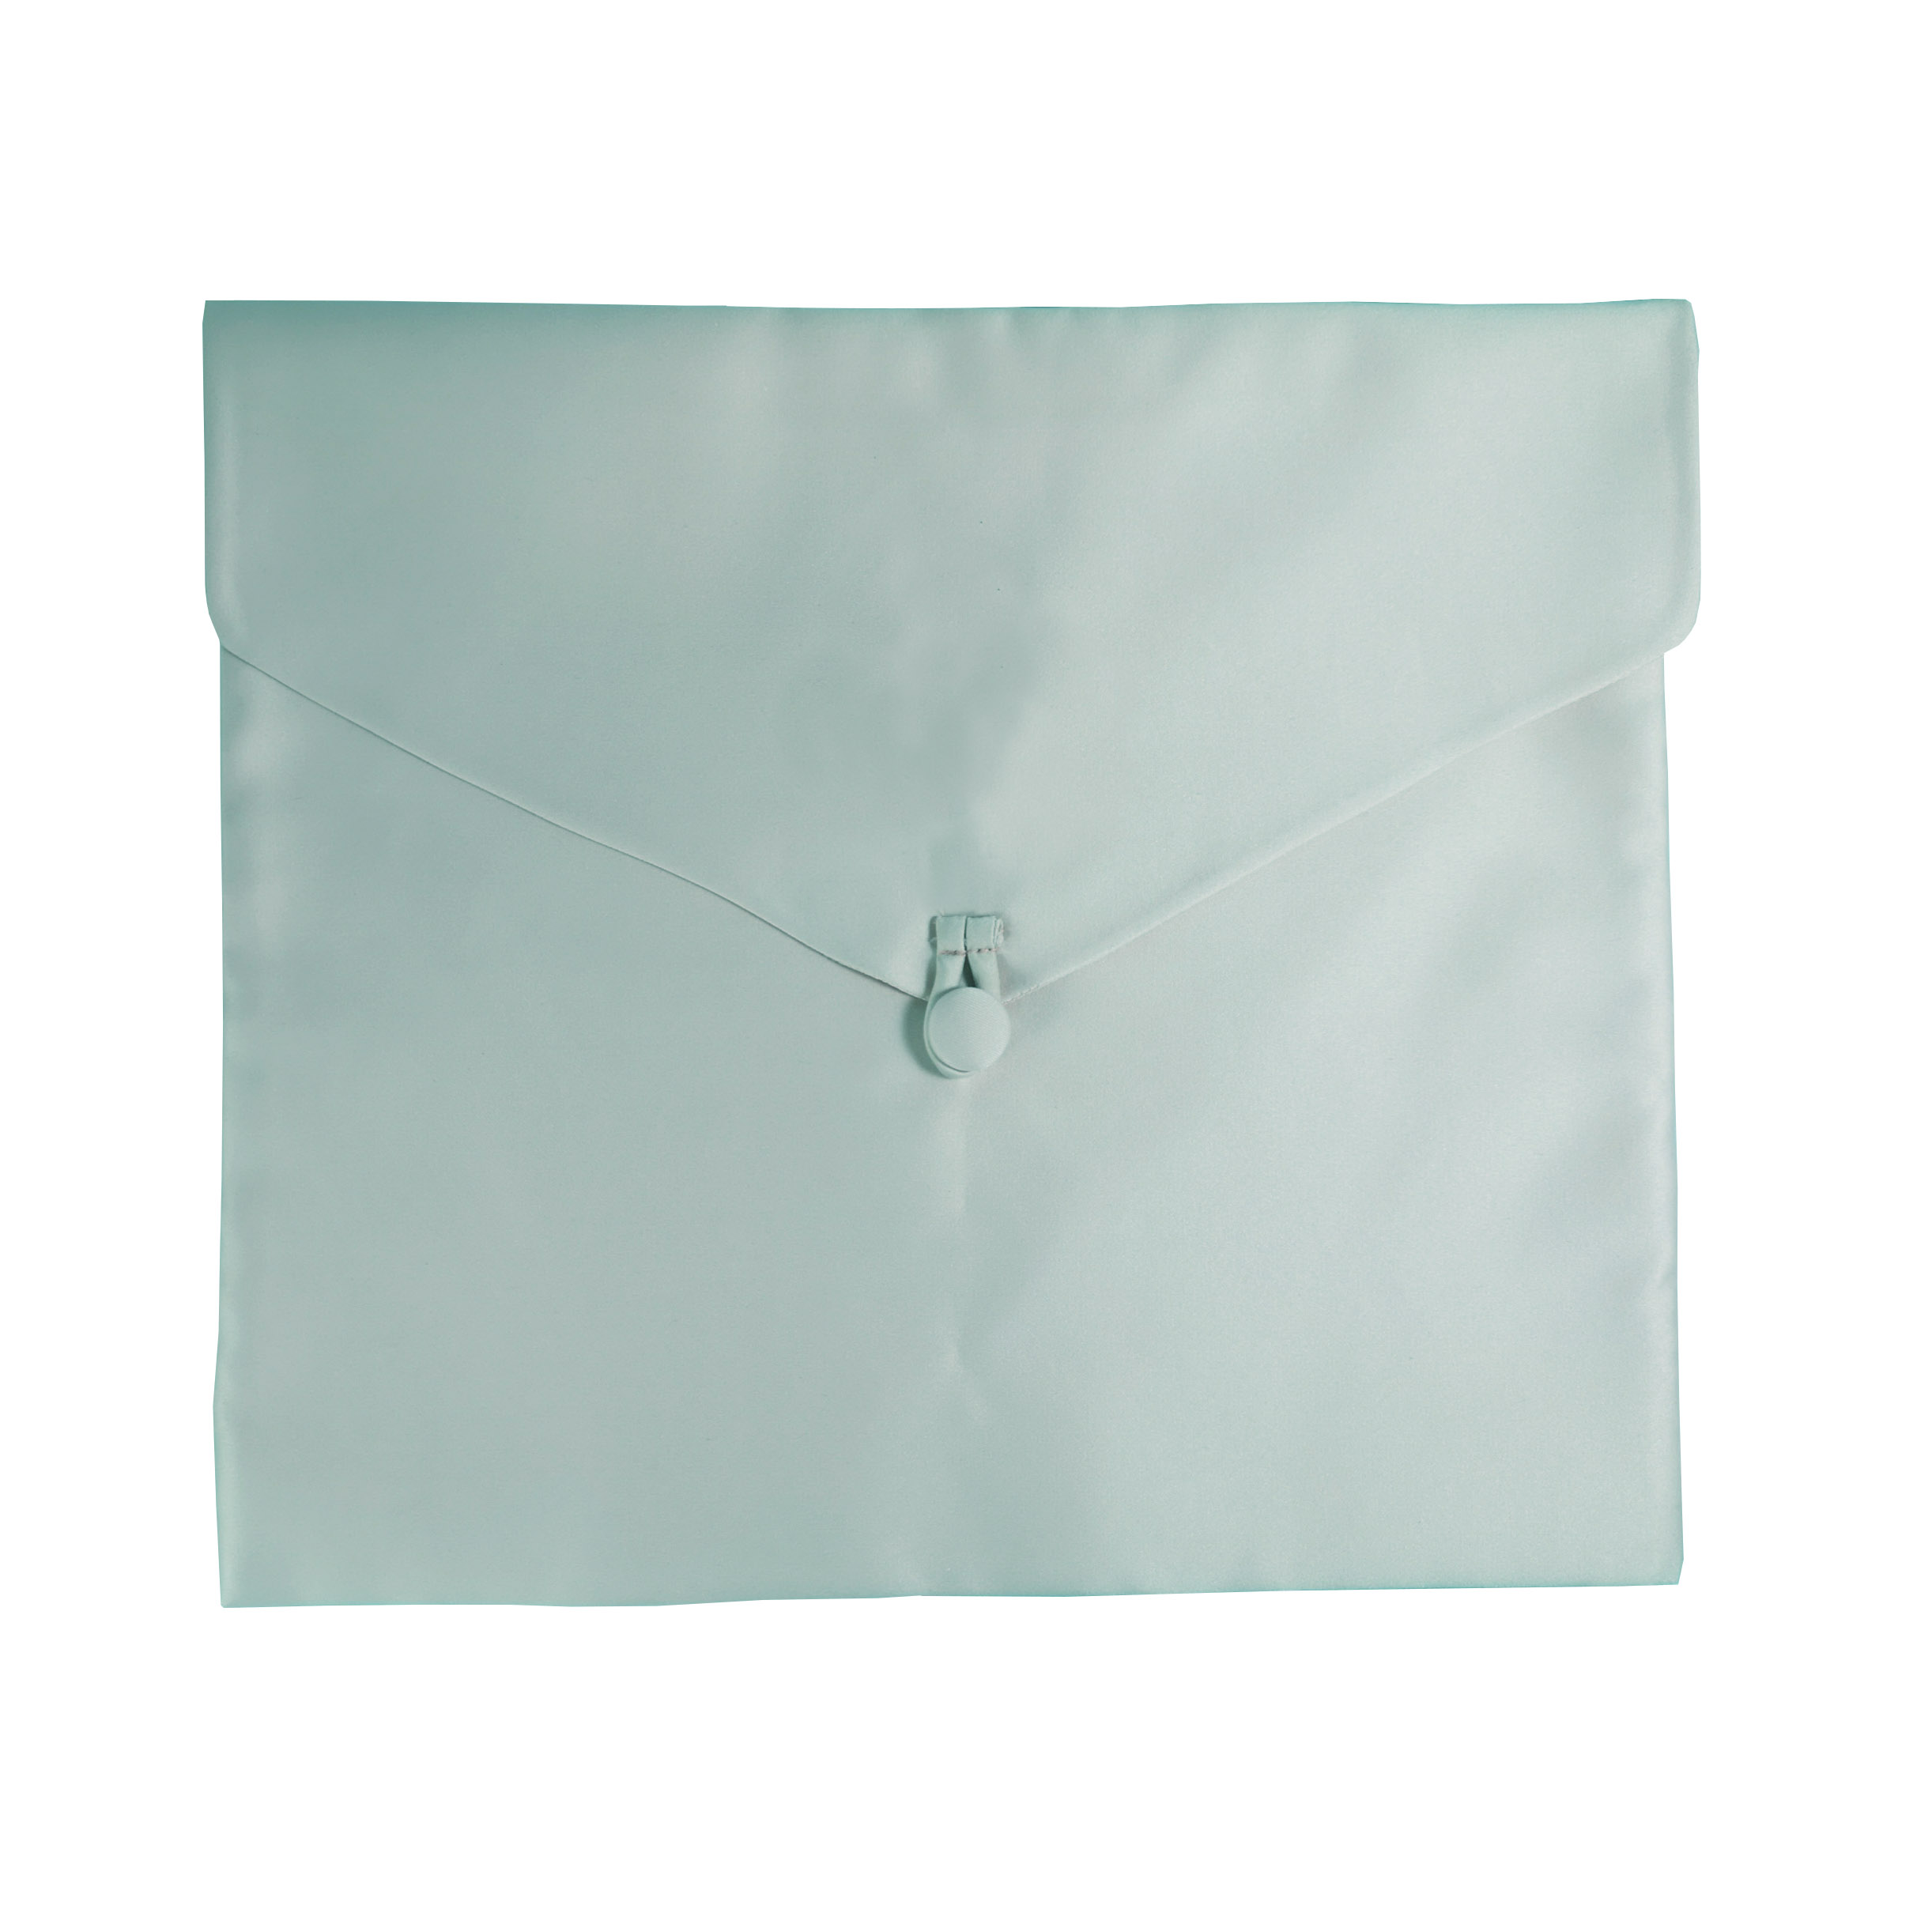 Mint 100% silk envelope for jewelry packaging